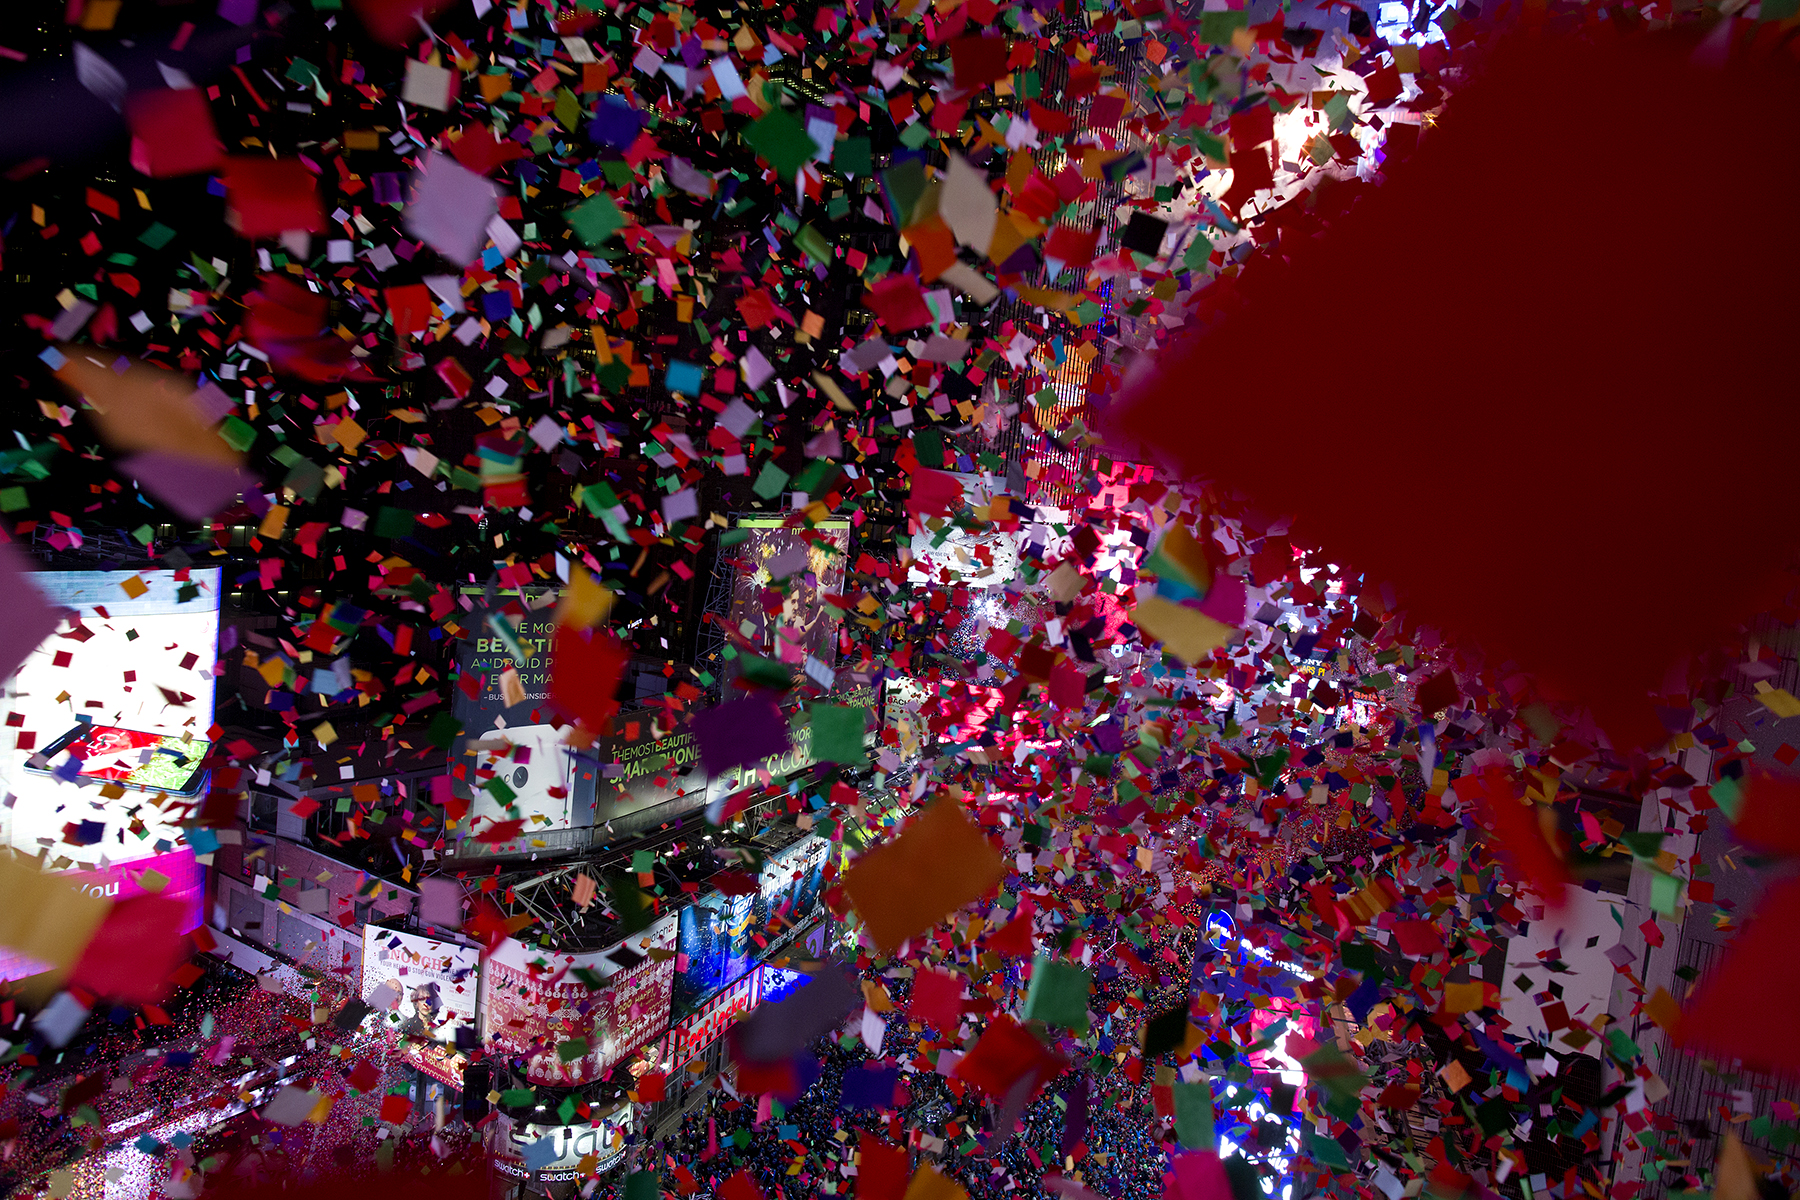 New Year celebration, Times Square, 2014